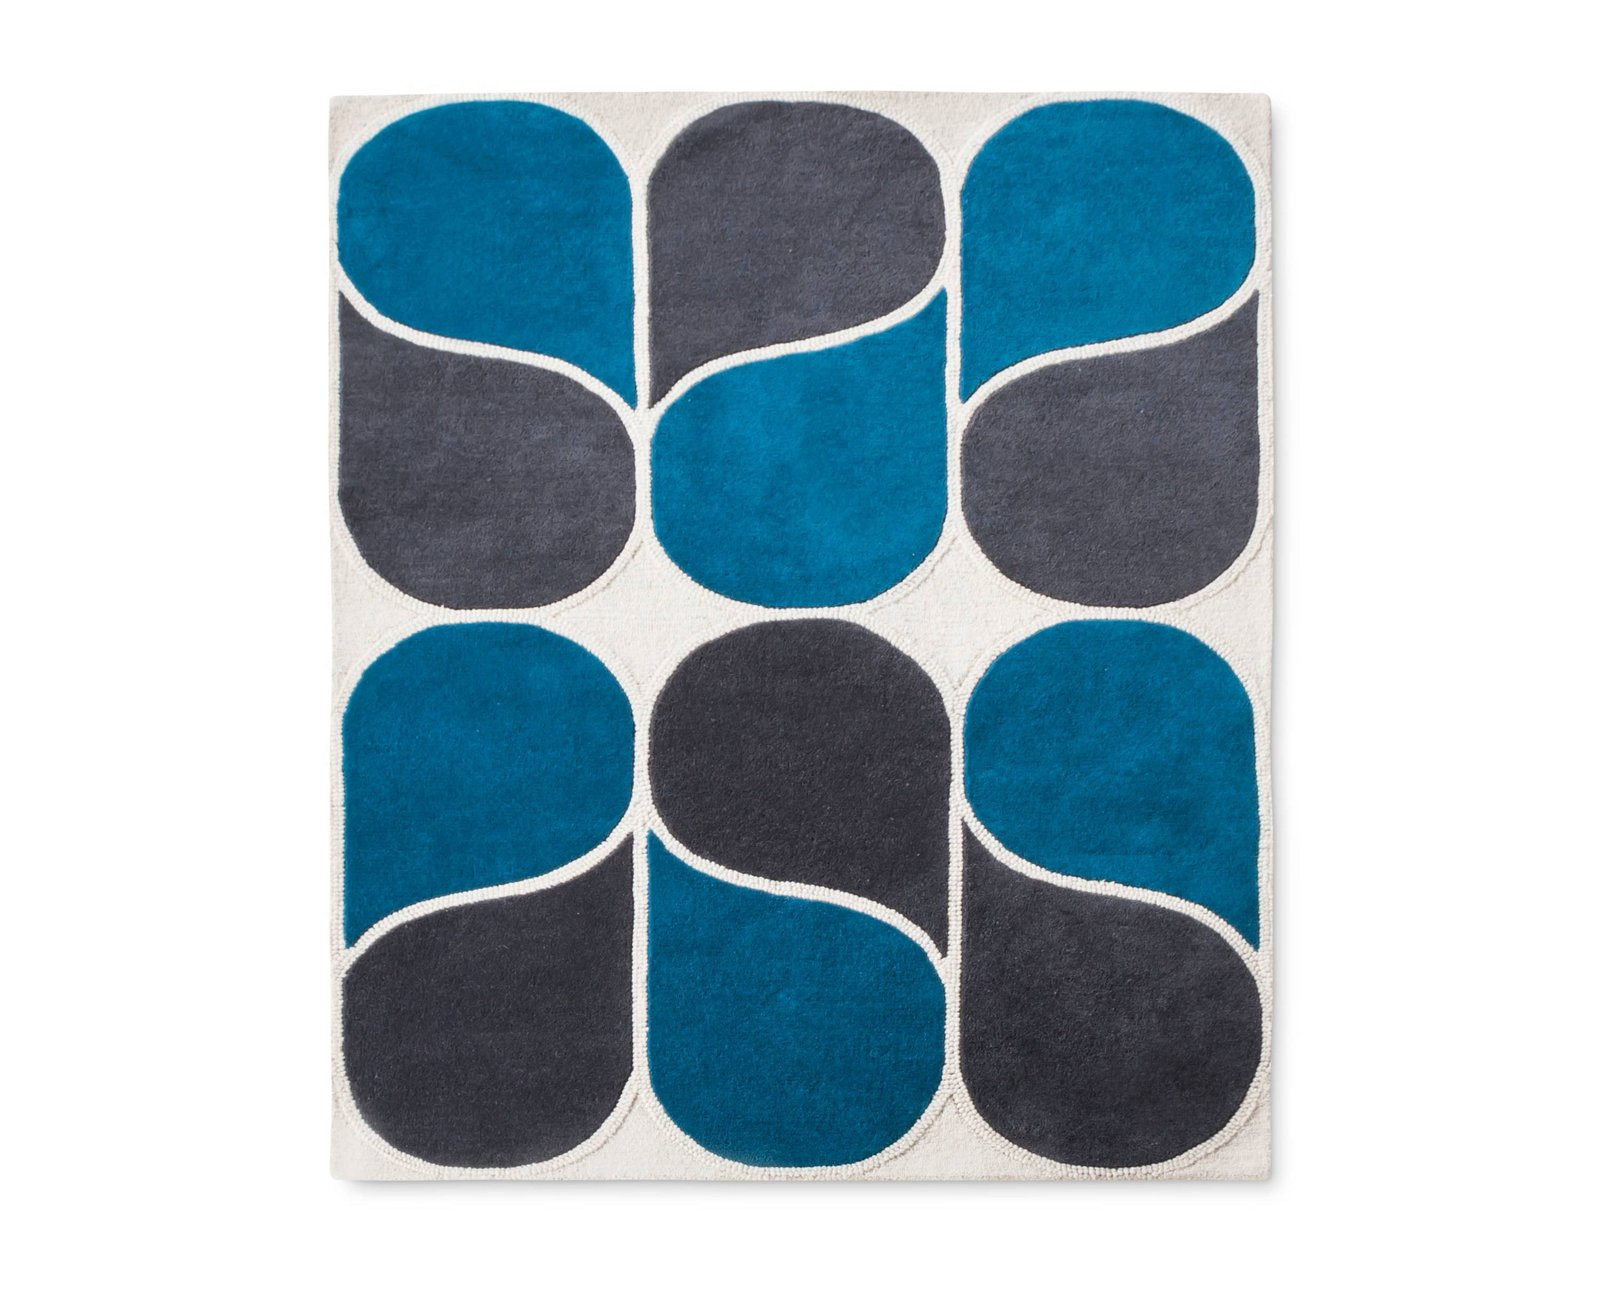 Photo 1 of 1 in Modern by Dwell Magazine Hand-Tufted Wool Rug